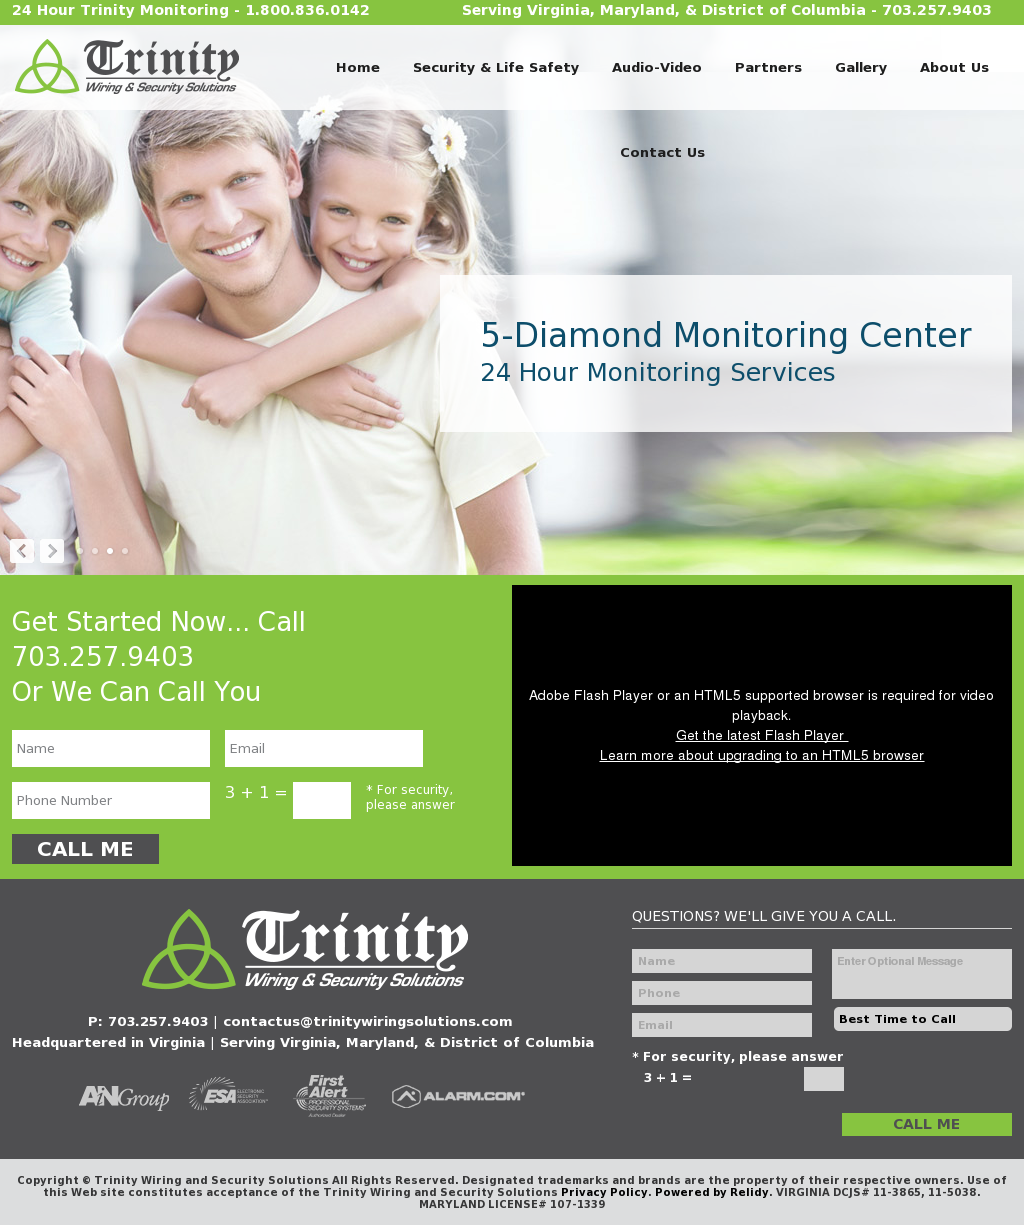 Trinity Wiring Solutions Compeors, Revenue and Employees ... on